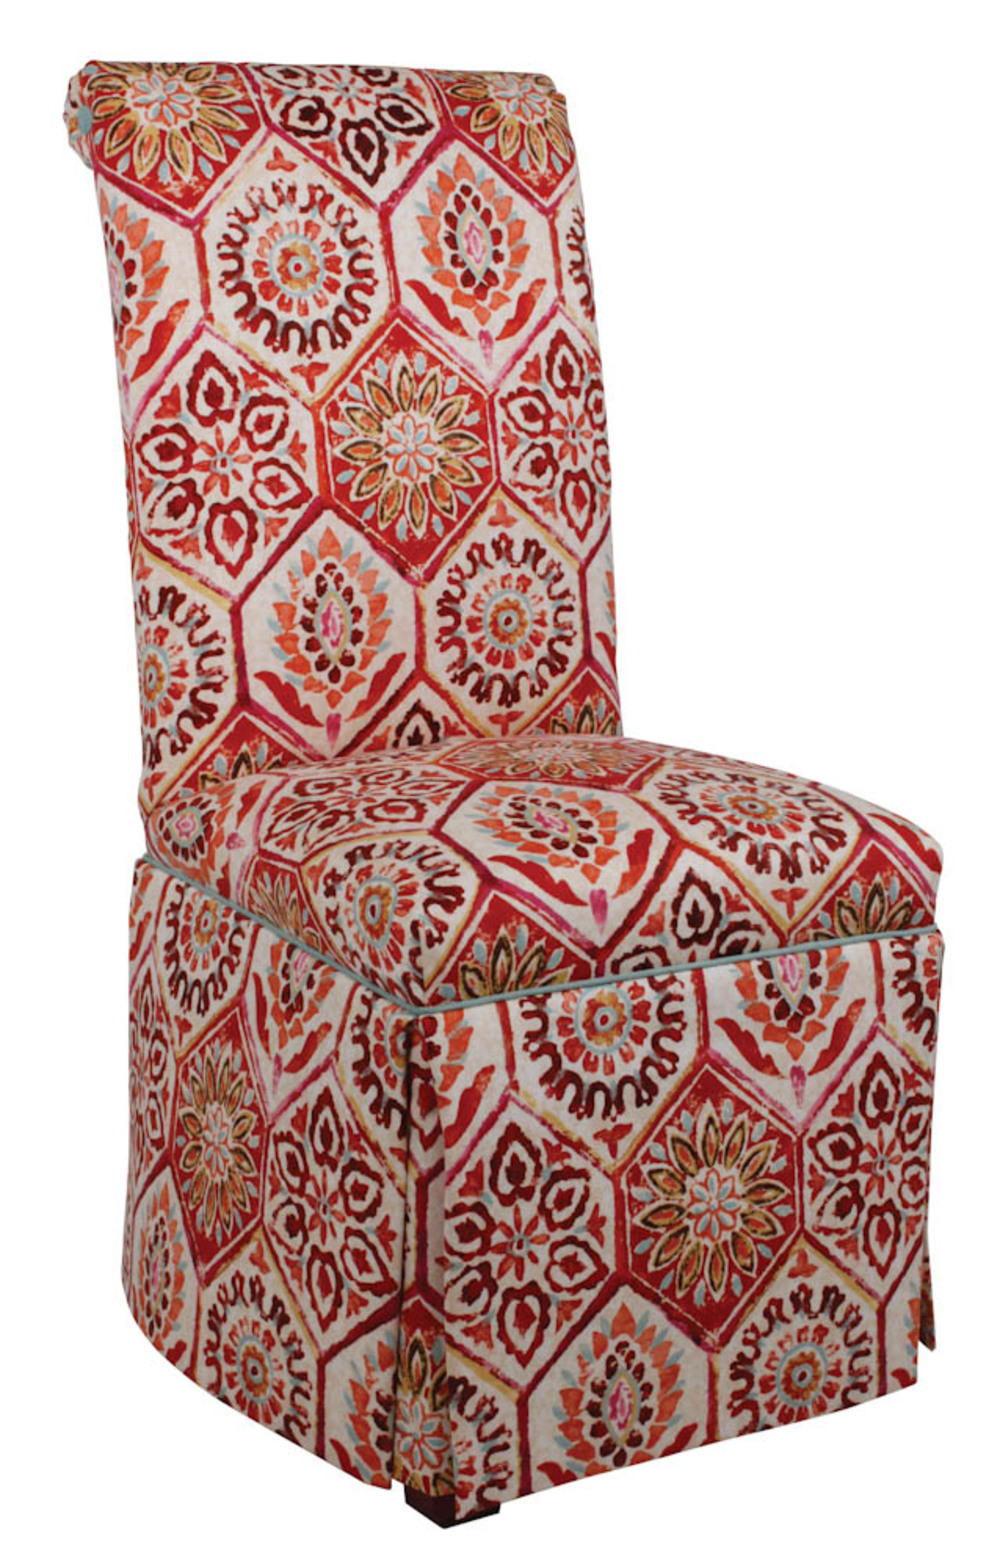 Cox Manufacturing - Scroll Back Chair